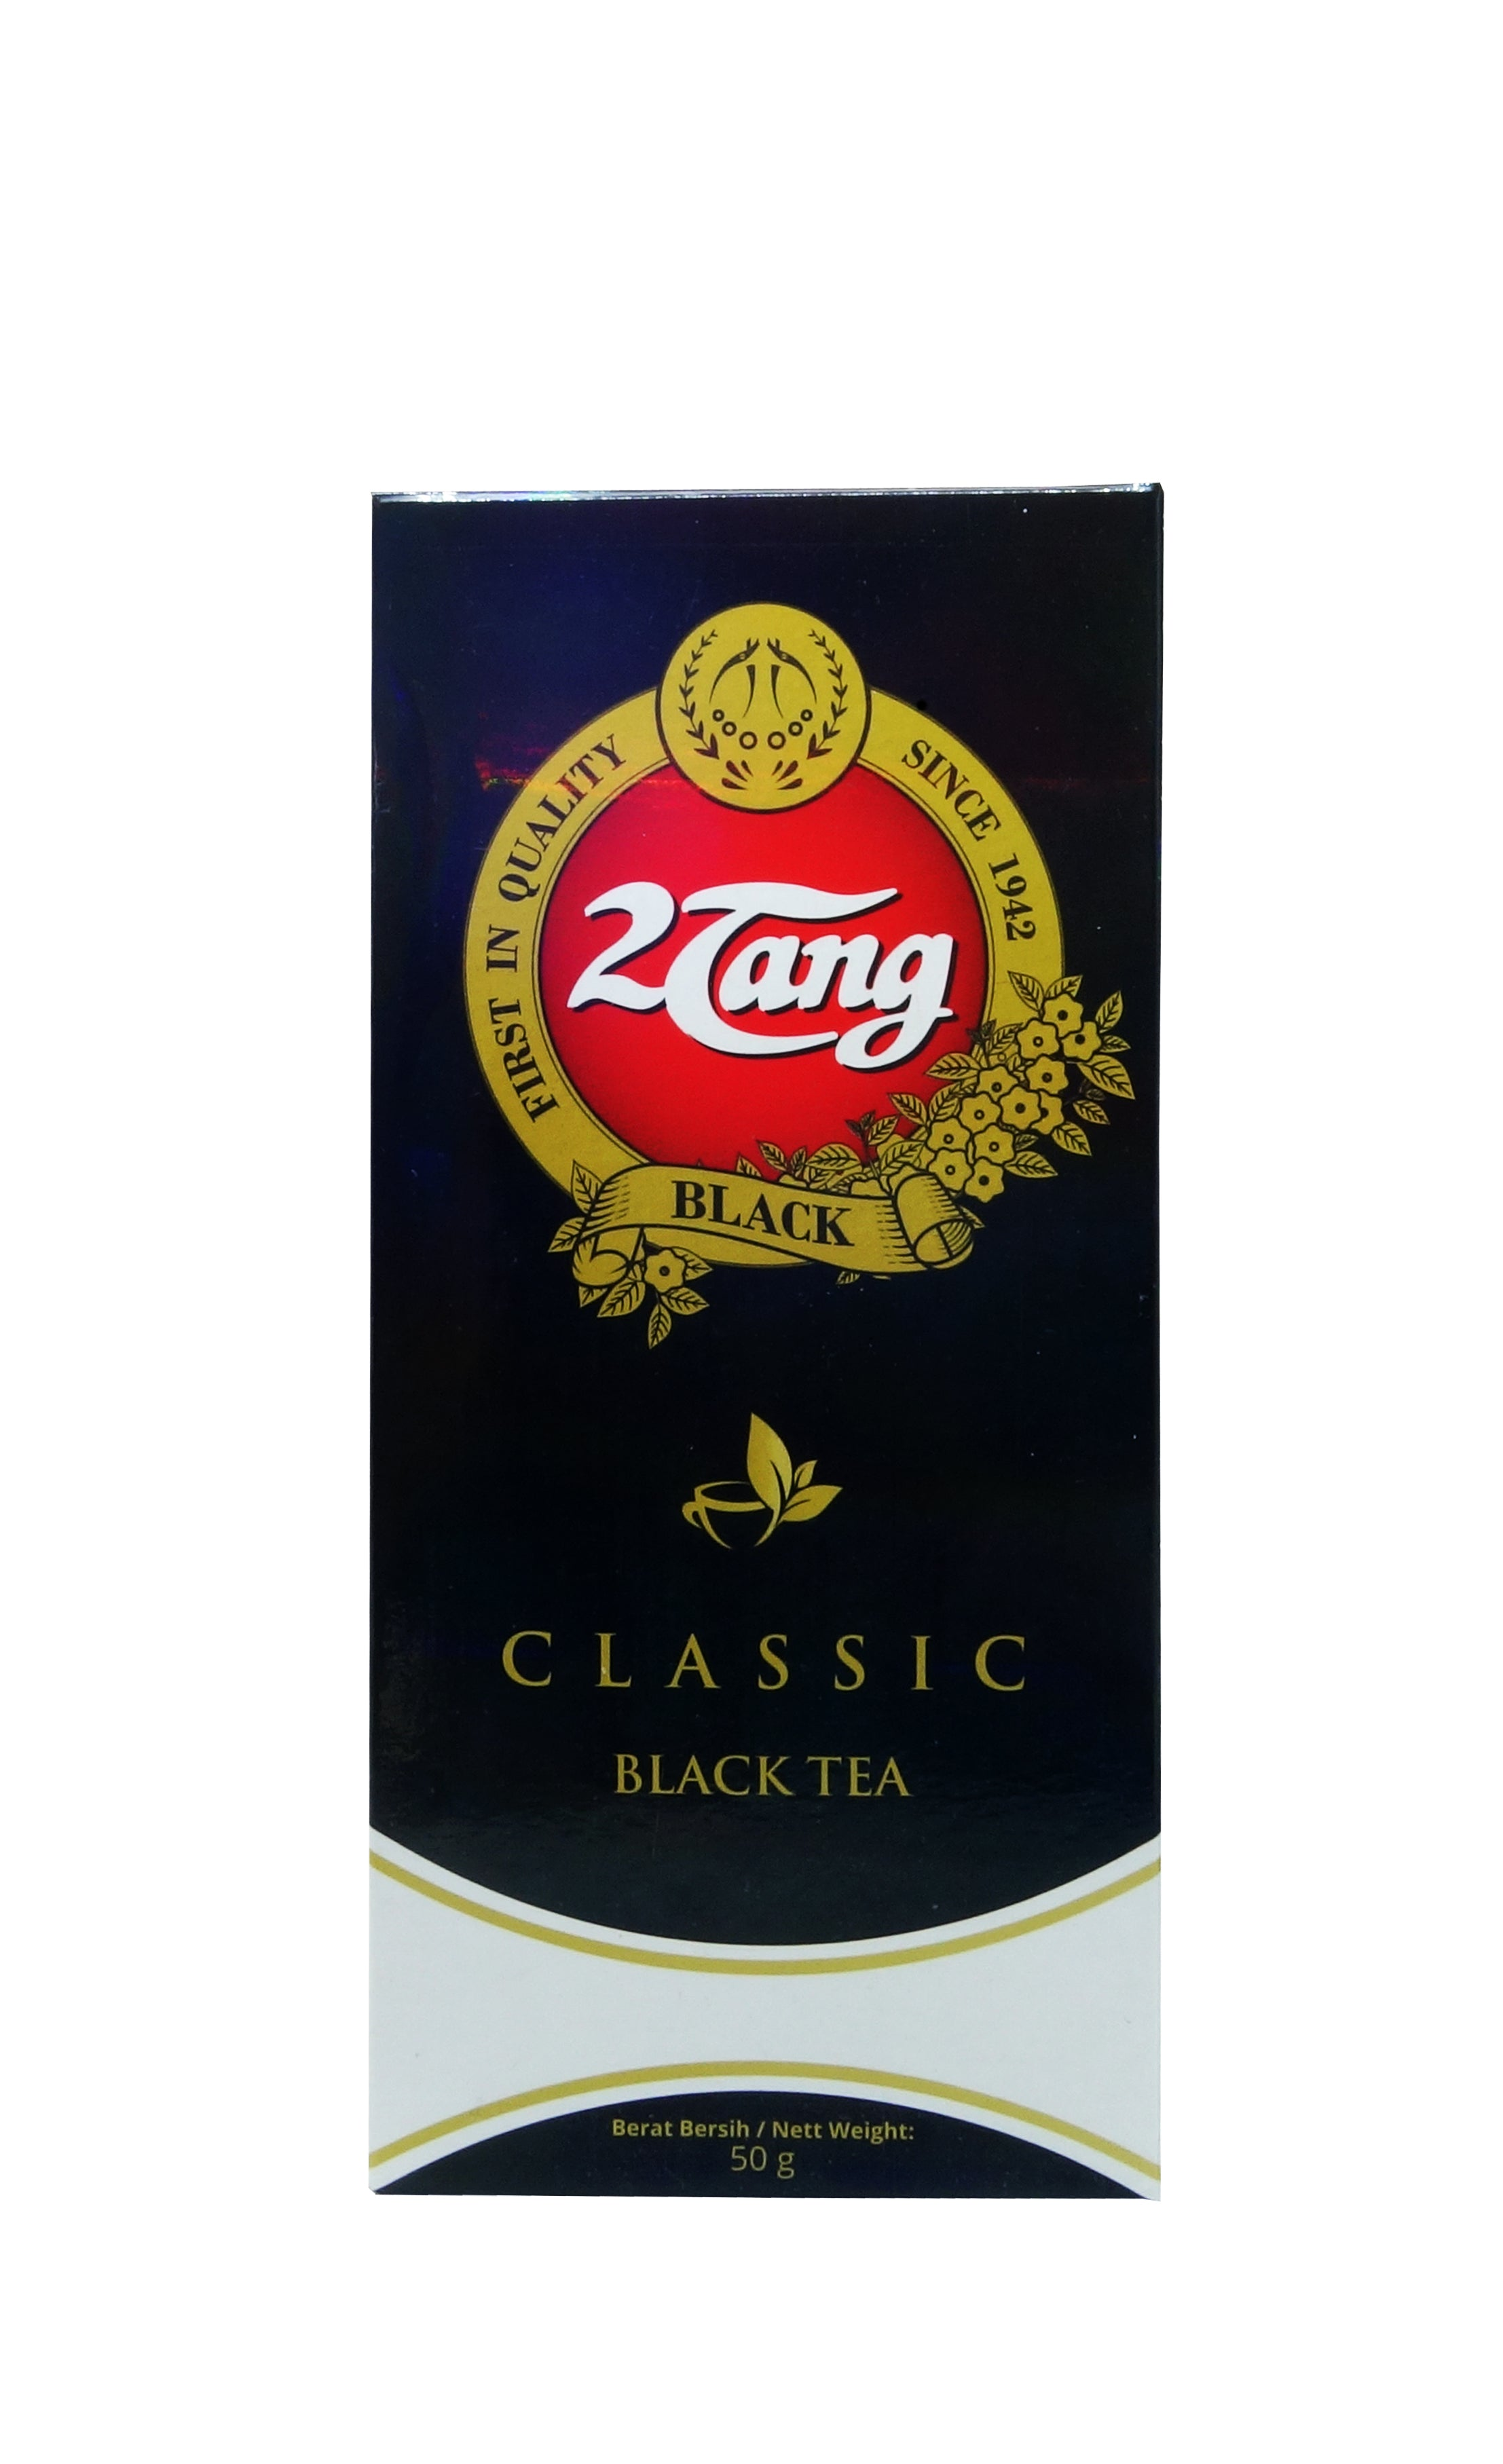 Black Tea Premium ( 2 Tang )